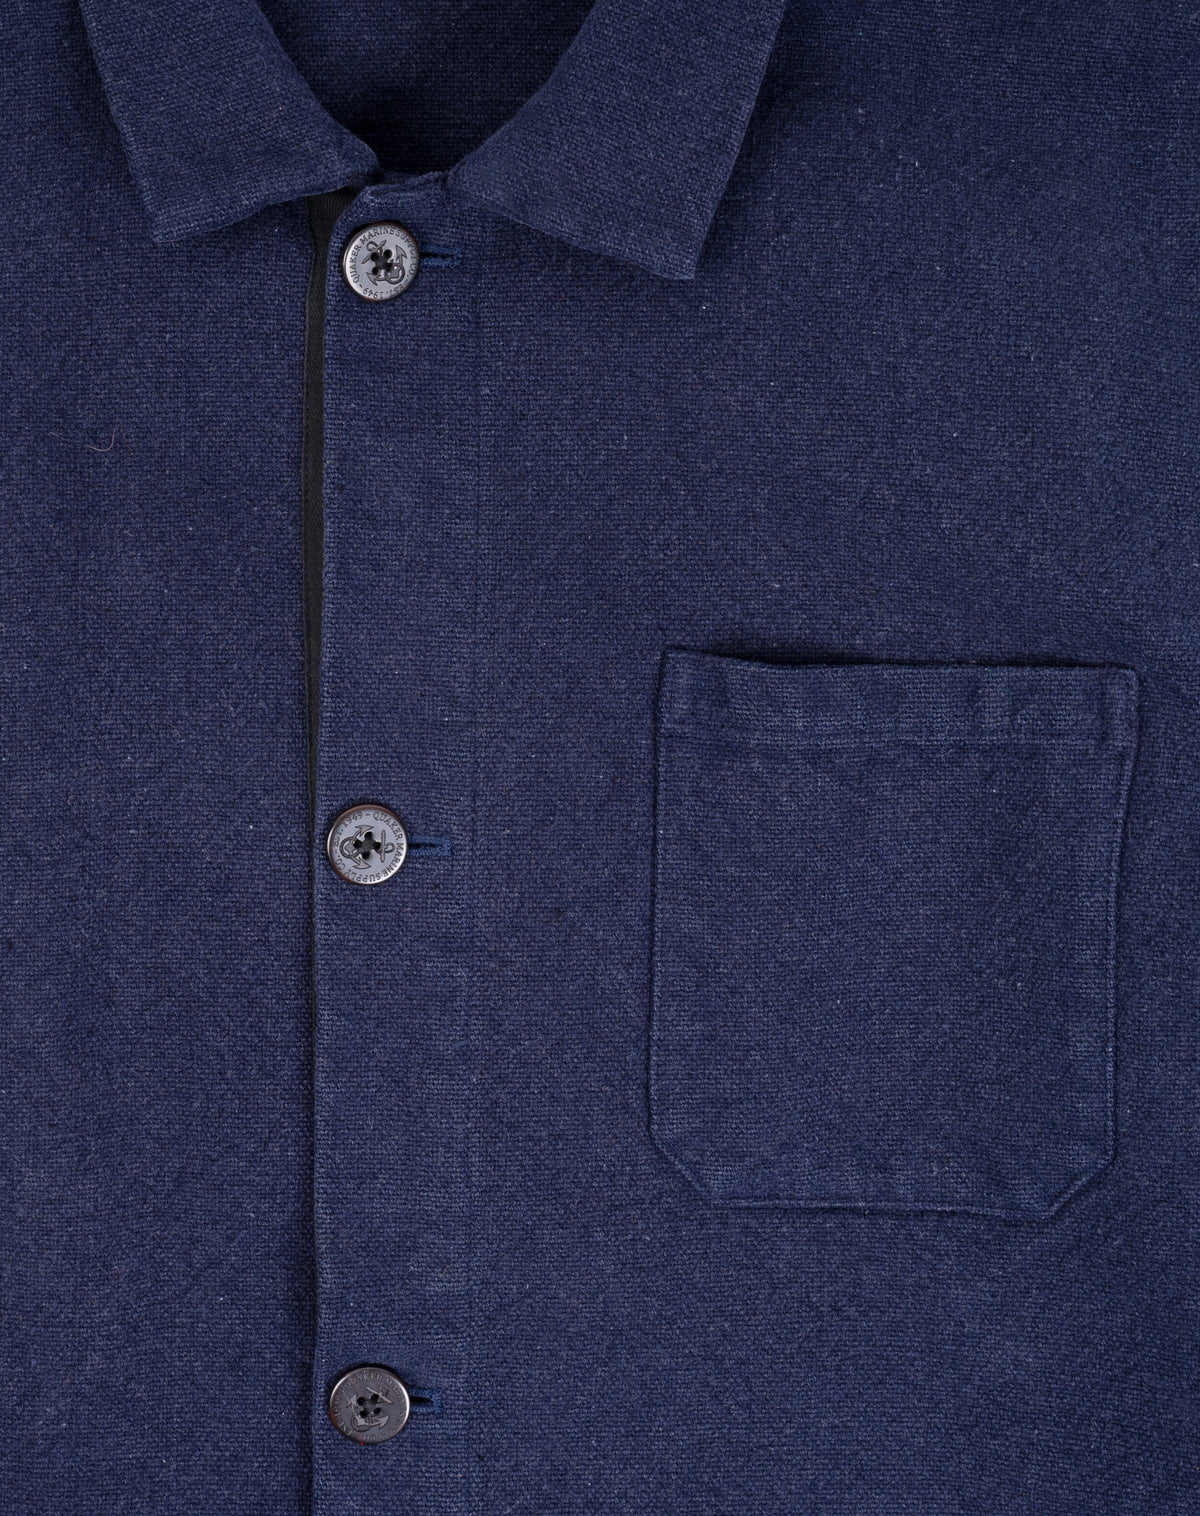 French Workman's Jacket in Navy